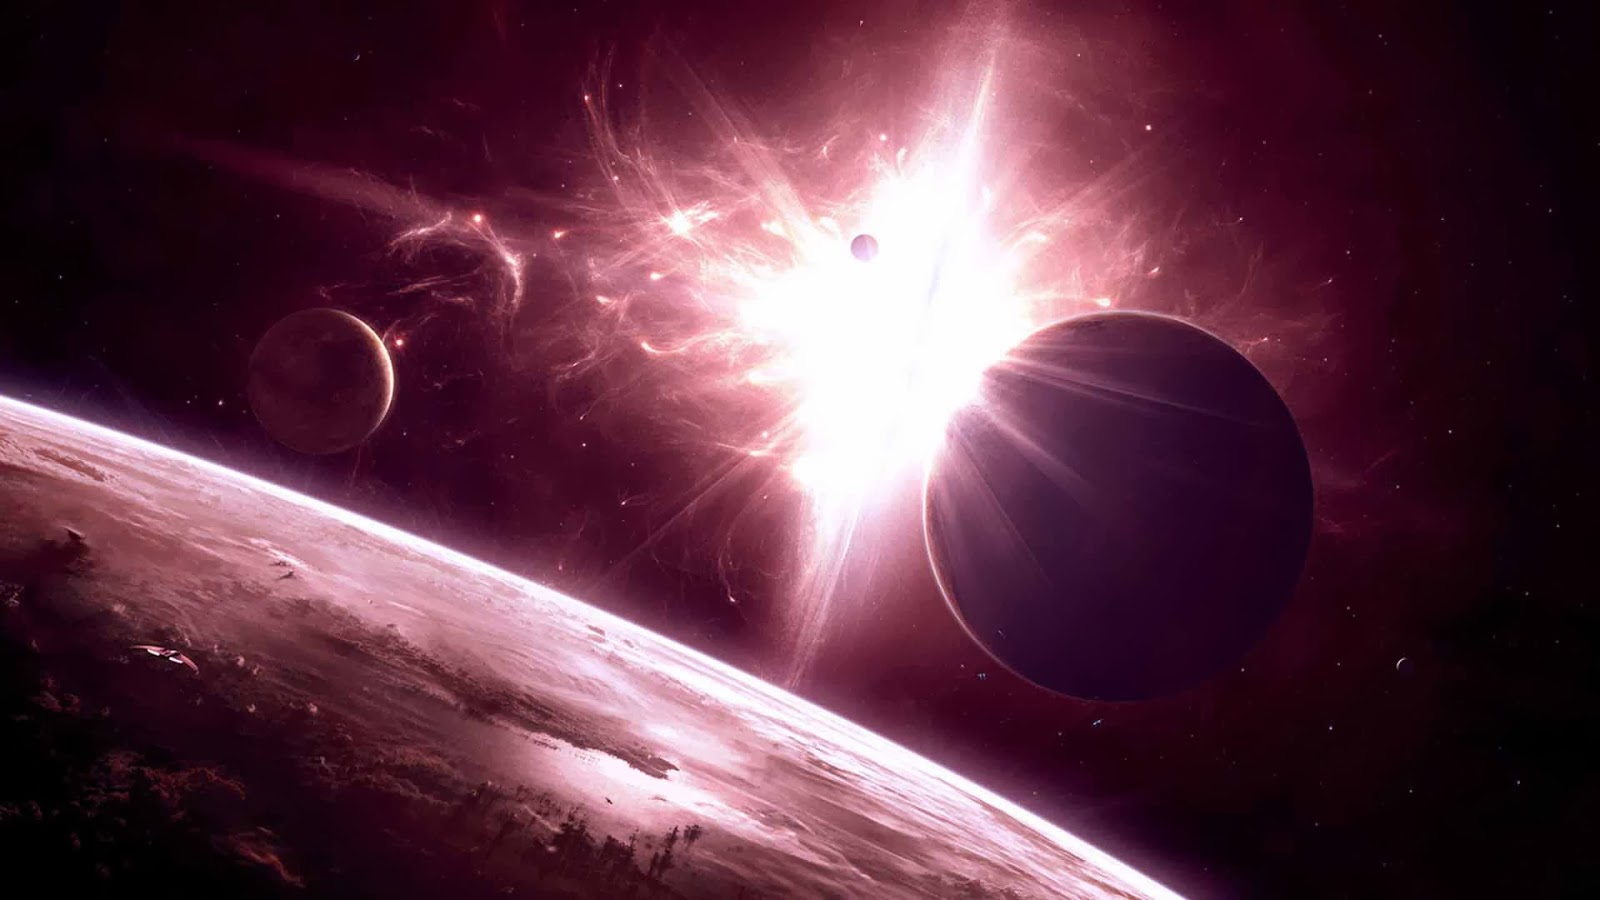 Hd Wallpapers Blog: Space Wallpapers 1920x1080